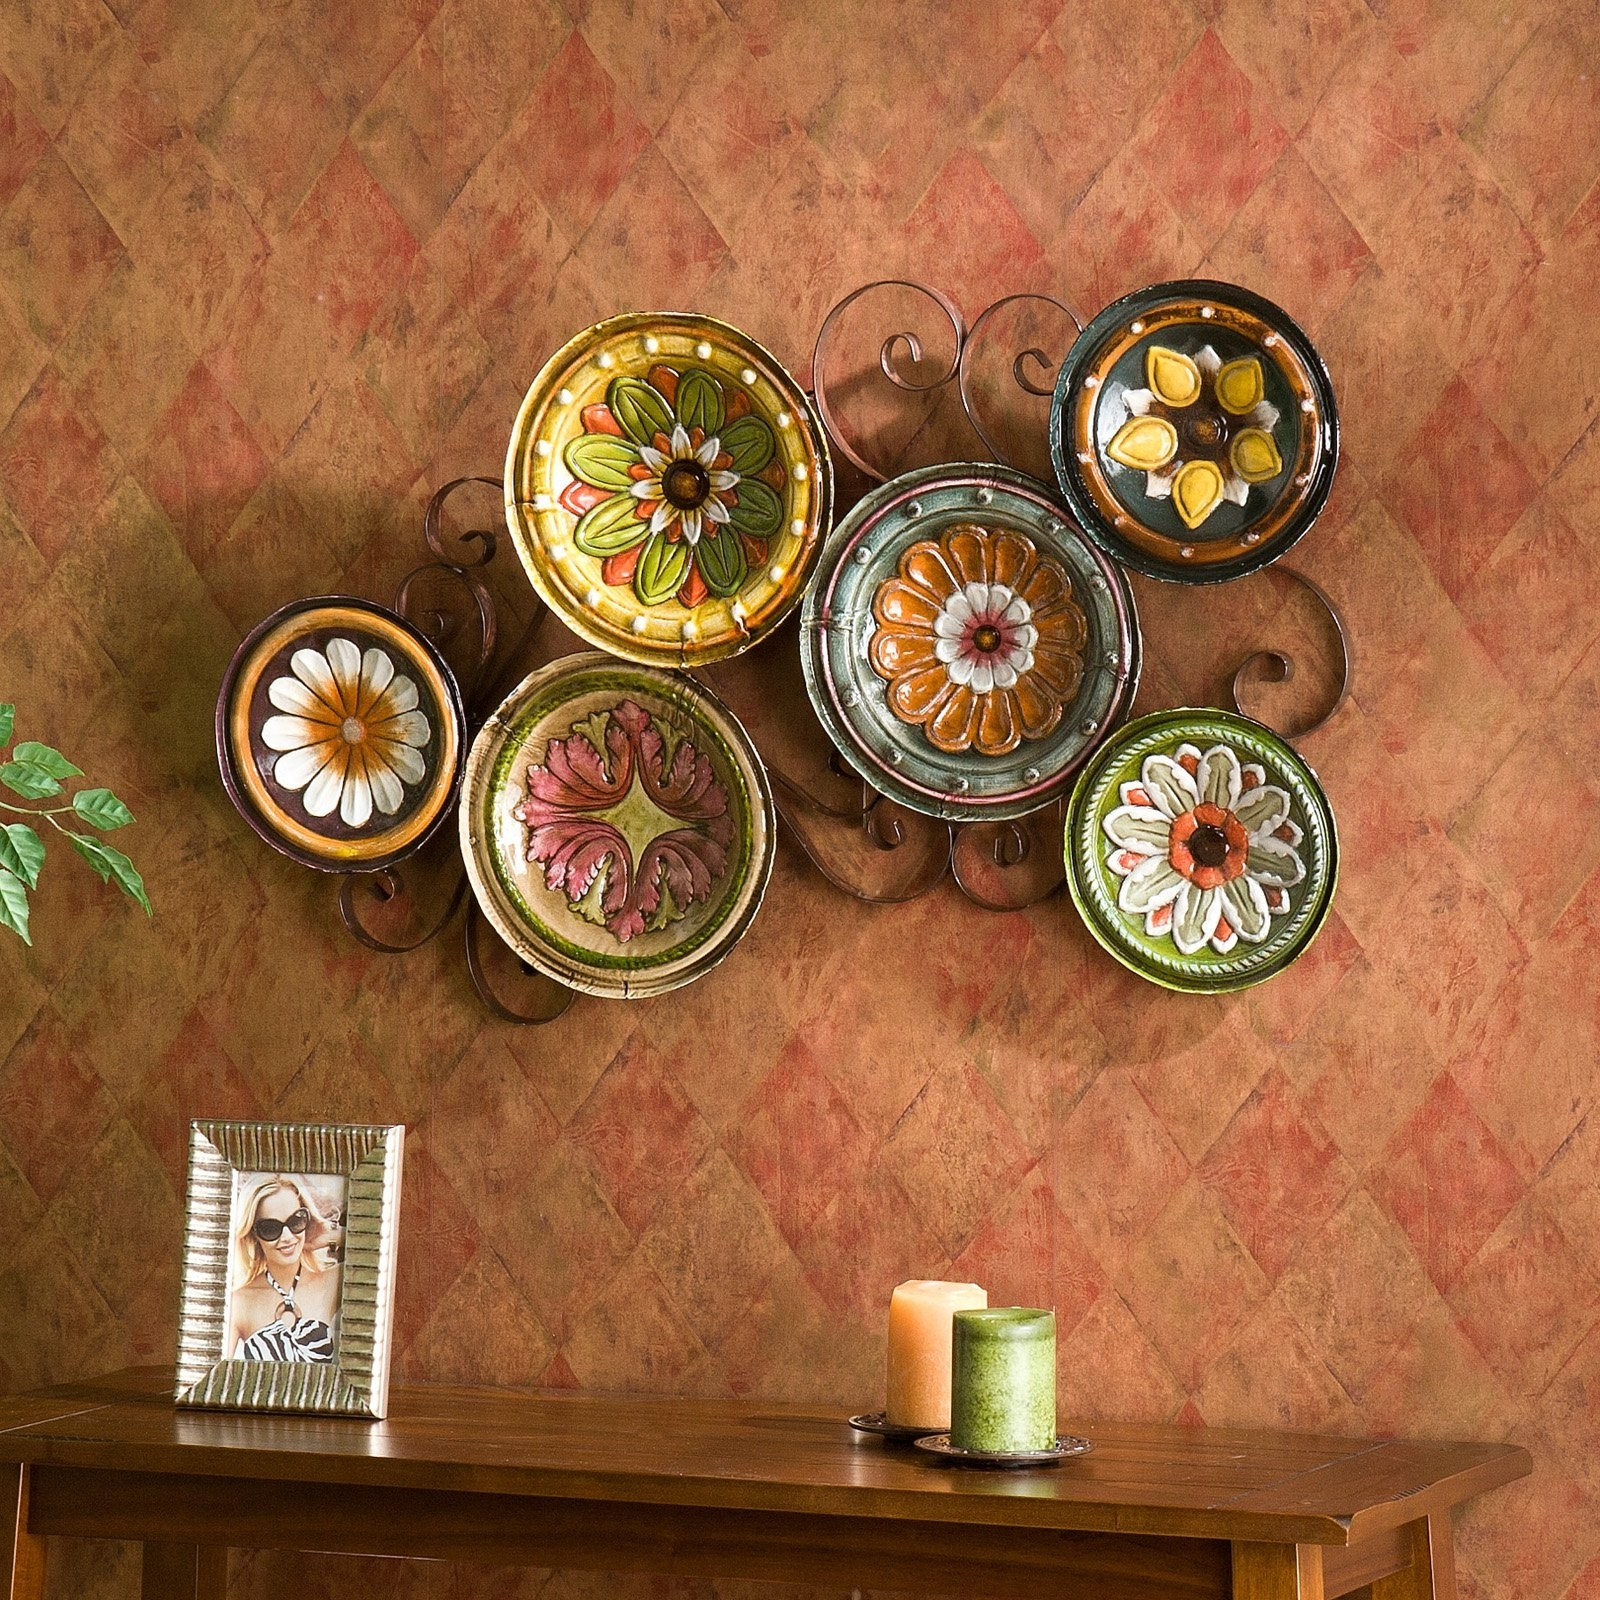 Southern Enterprises Scattered Italian Plates Metal Wall Art With Fashionable Italian Style Wall Art (View 15 of 15)